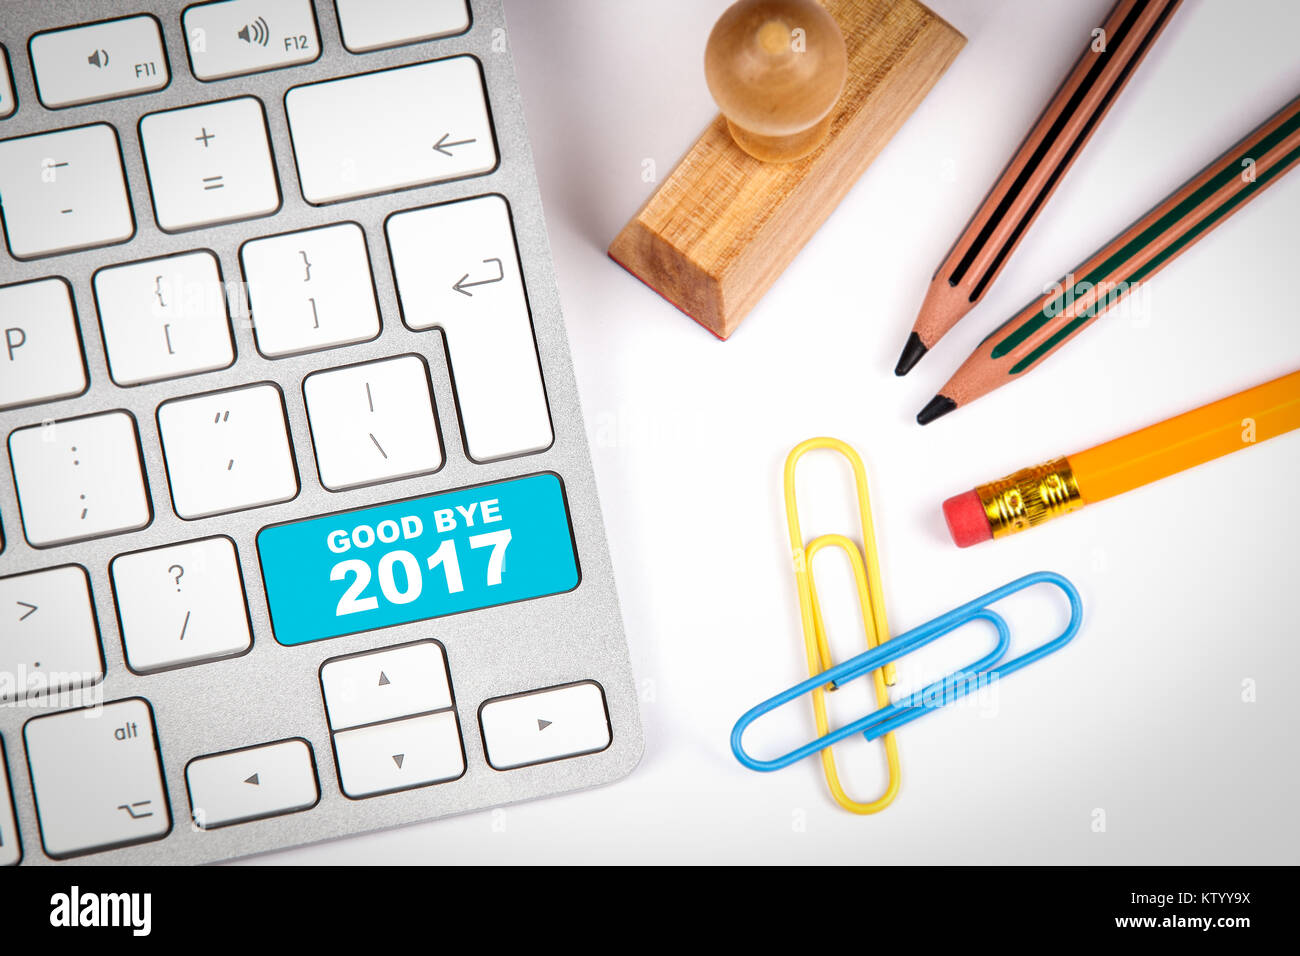 good bye 2017, Business concept. Computer keyboard on a white office desk with various items - Stock Image